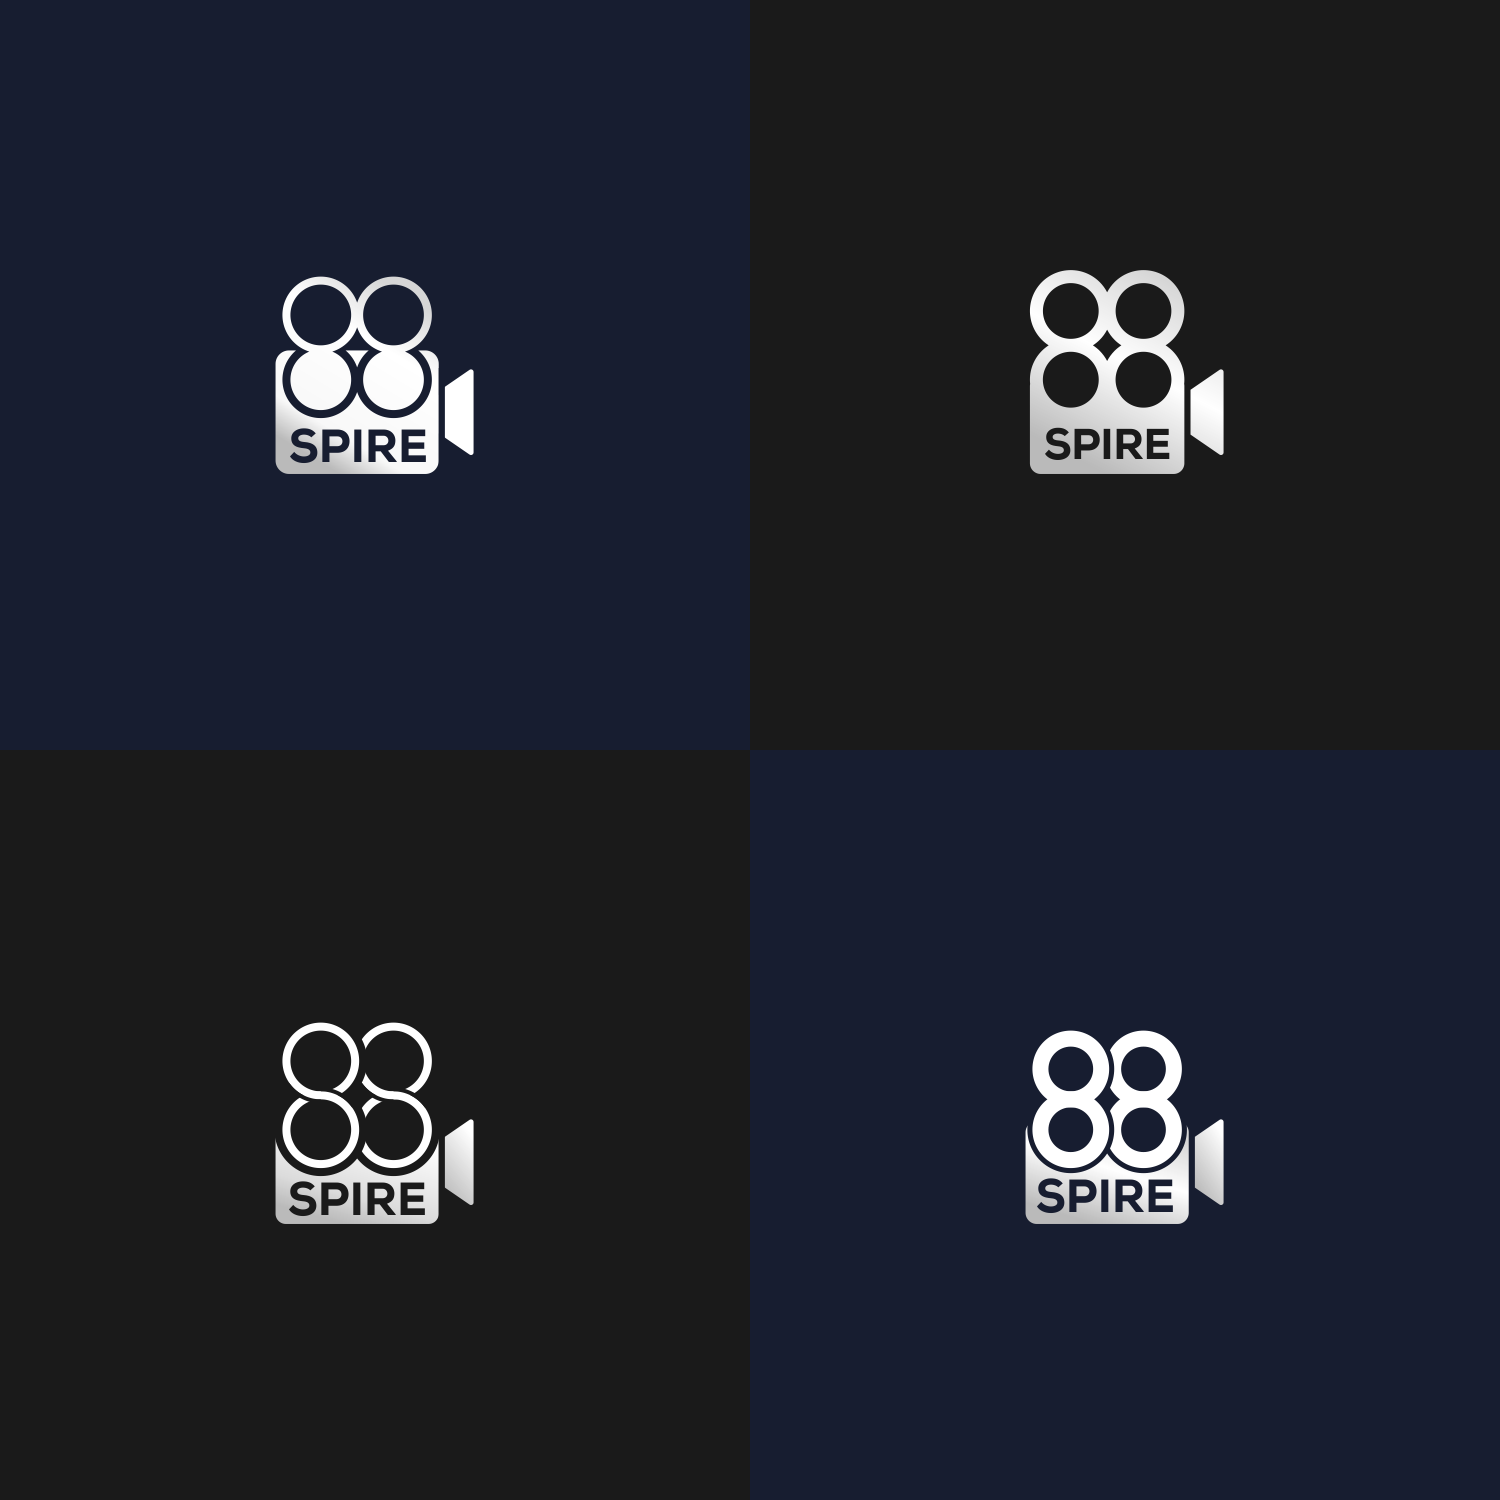 Videography company seeks new modern logo for 88spire Productions